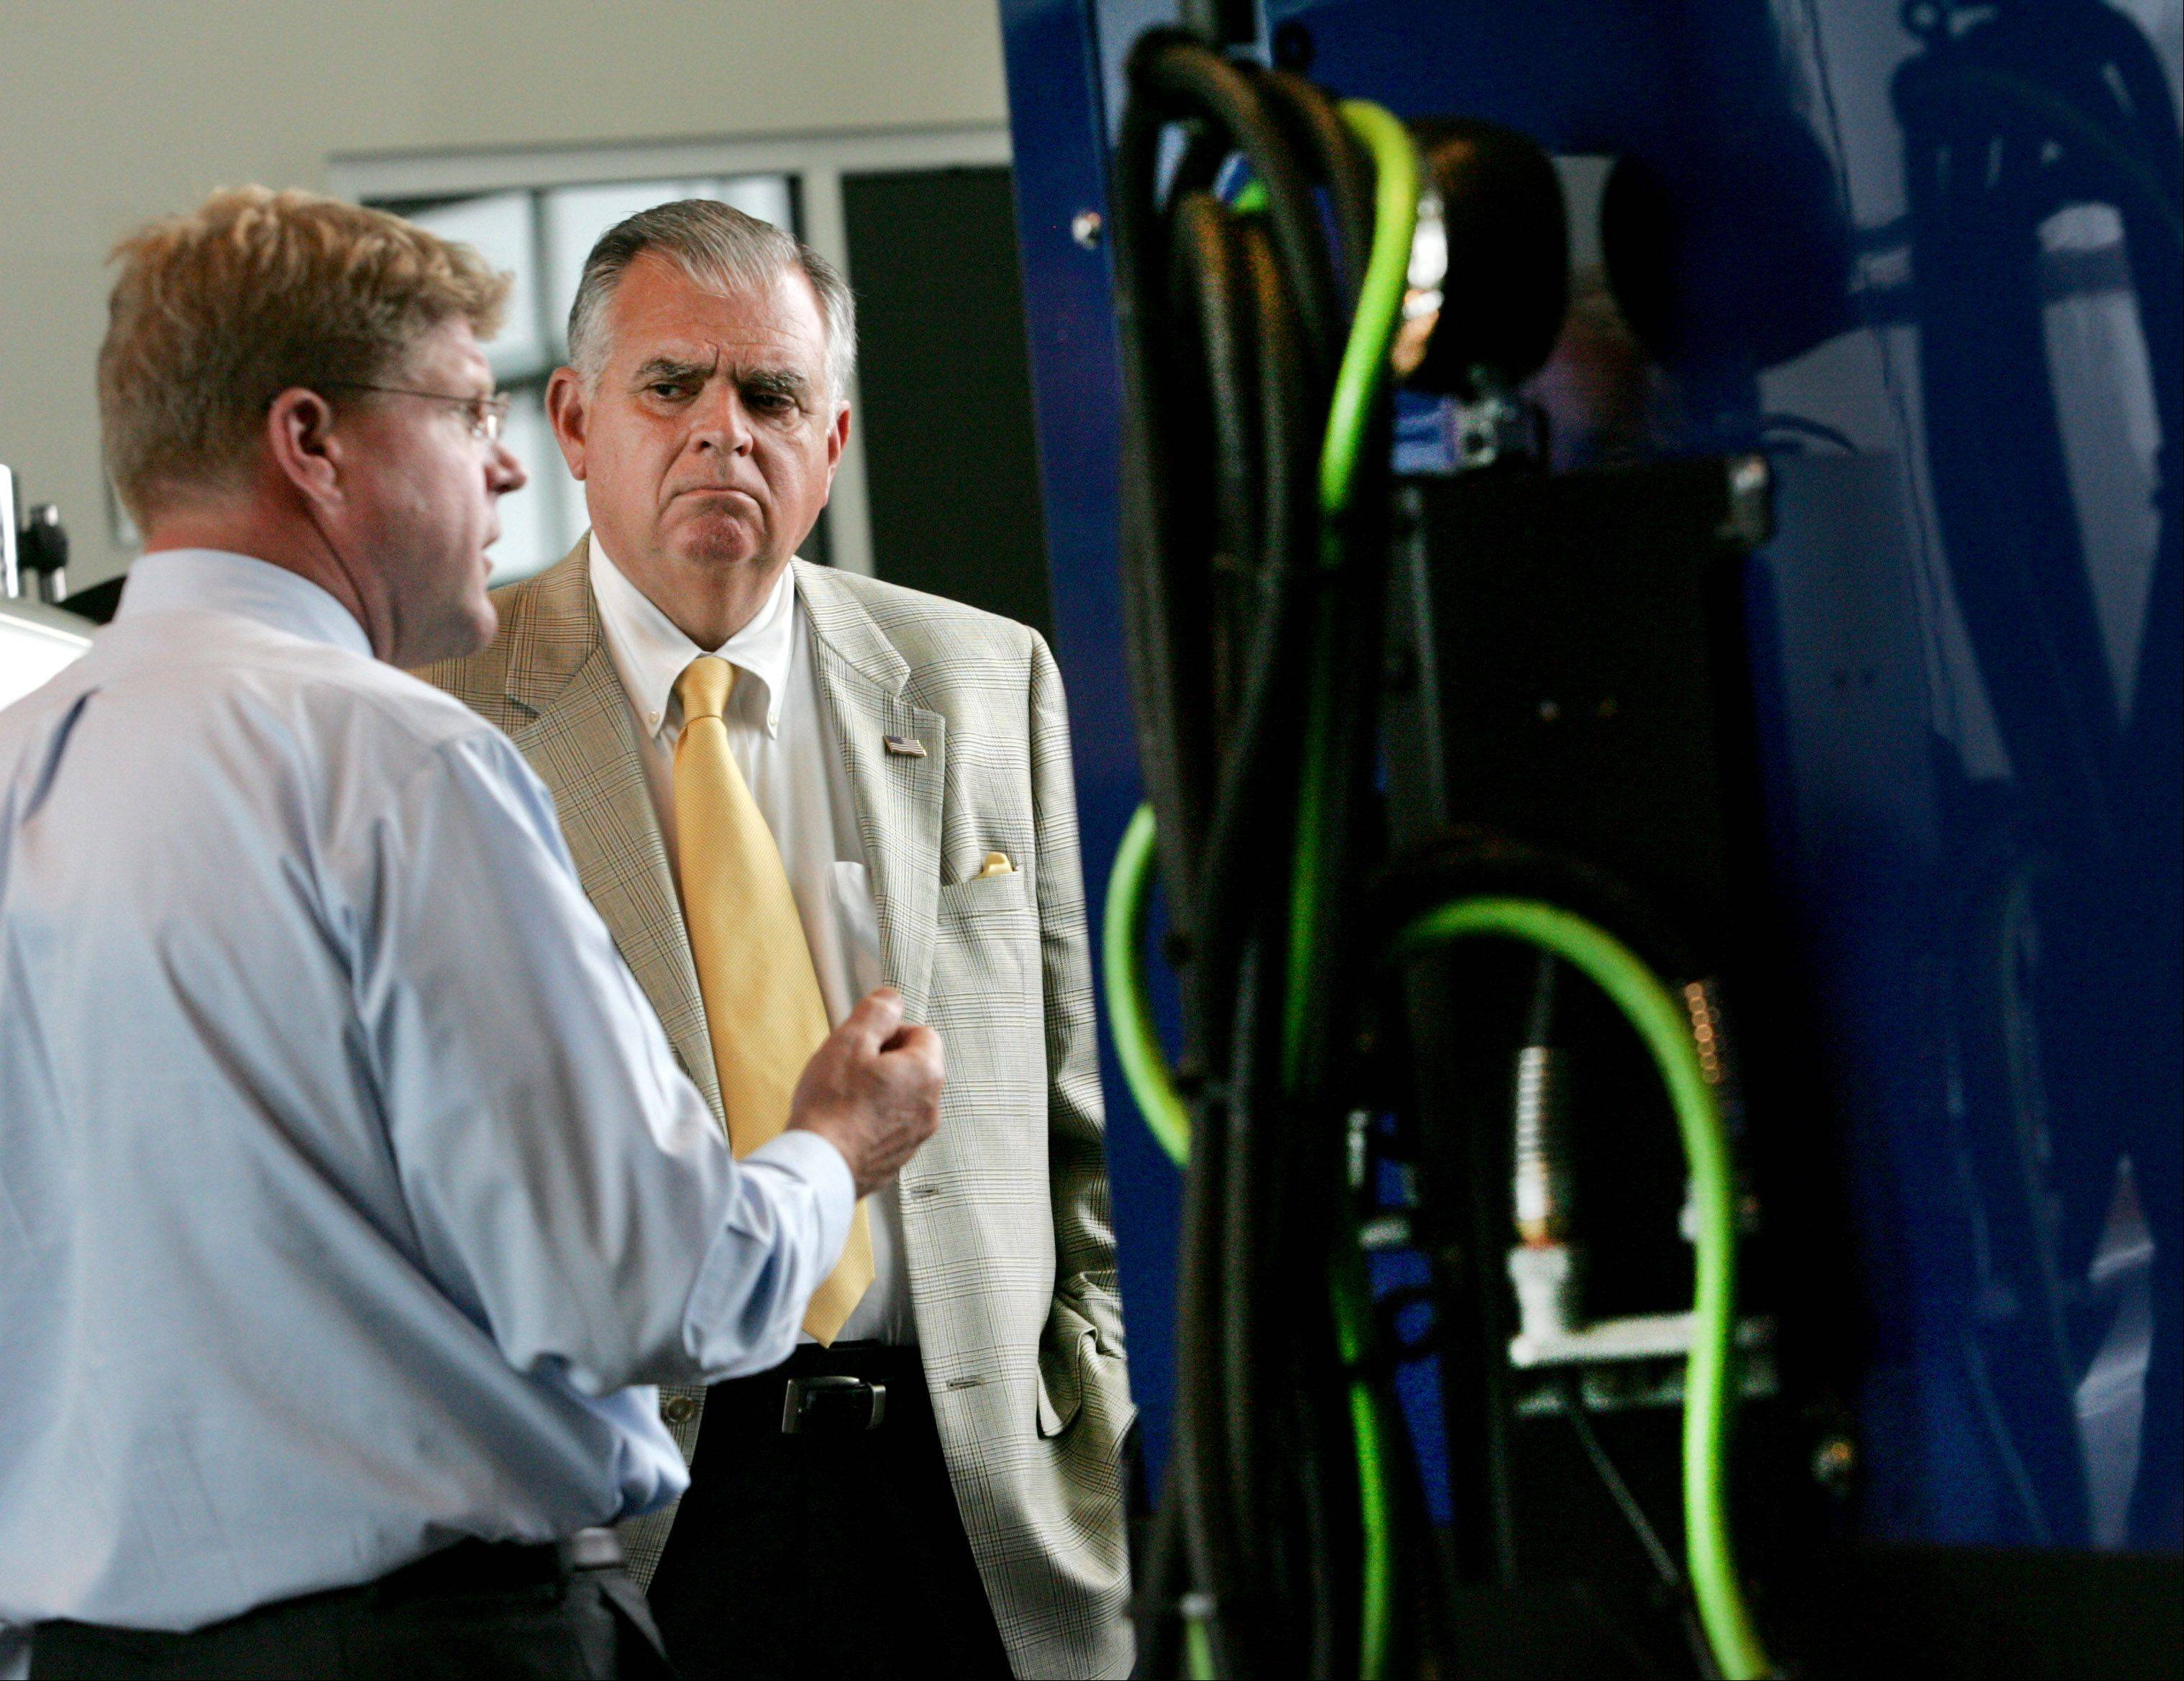 U.S. Transportation Secretary Ray LaHood listens to Dennis Mooney, left, vice president of engineering, as he looks at the latest inventory of trucks during a visit to Navistar in Lisle on Monday.